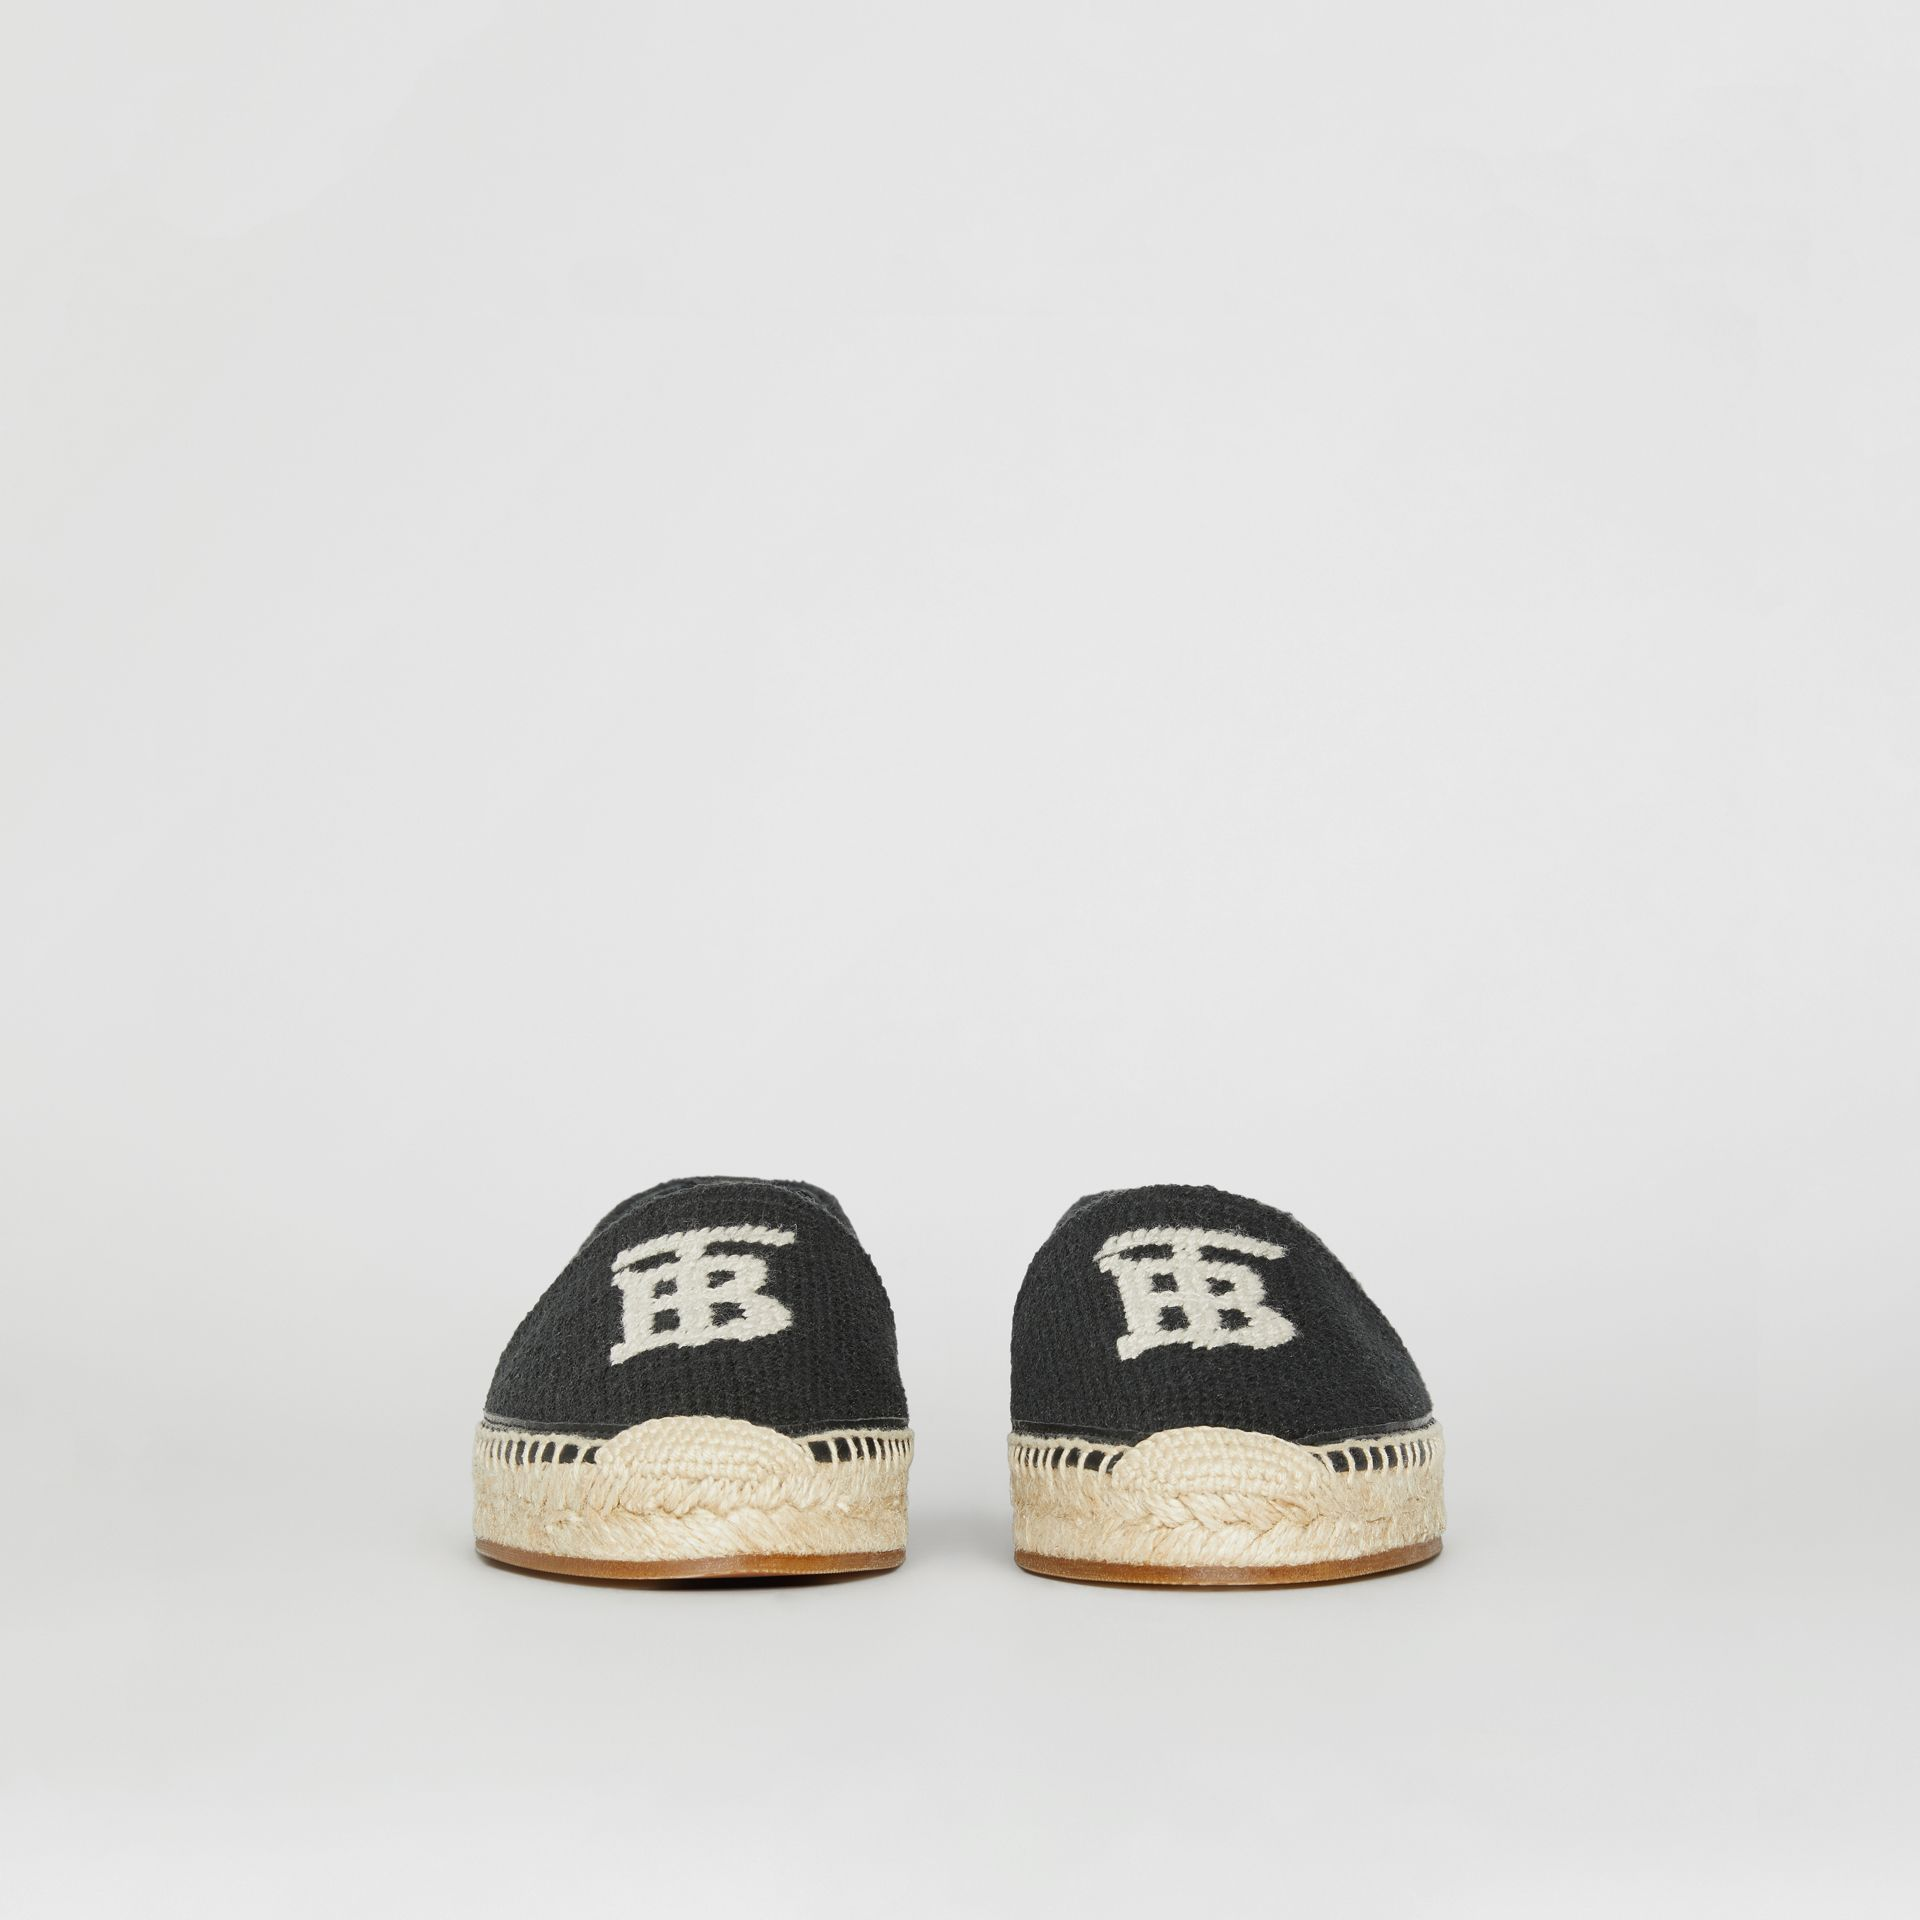 Monogram Motif Cotton and Leather Espadrilles in Black/ecru - Women | Burberry - gallery image 2